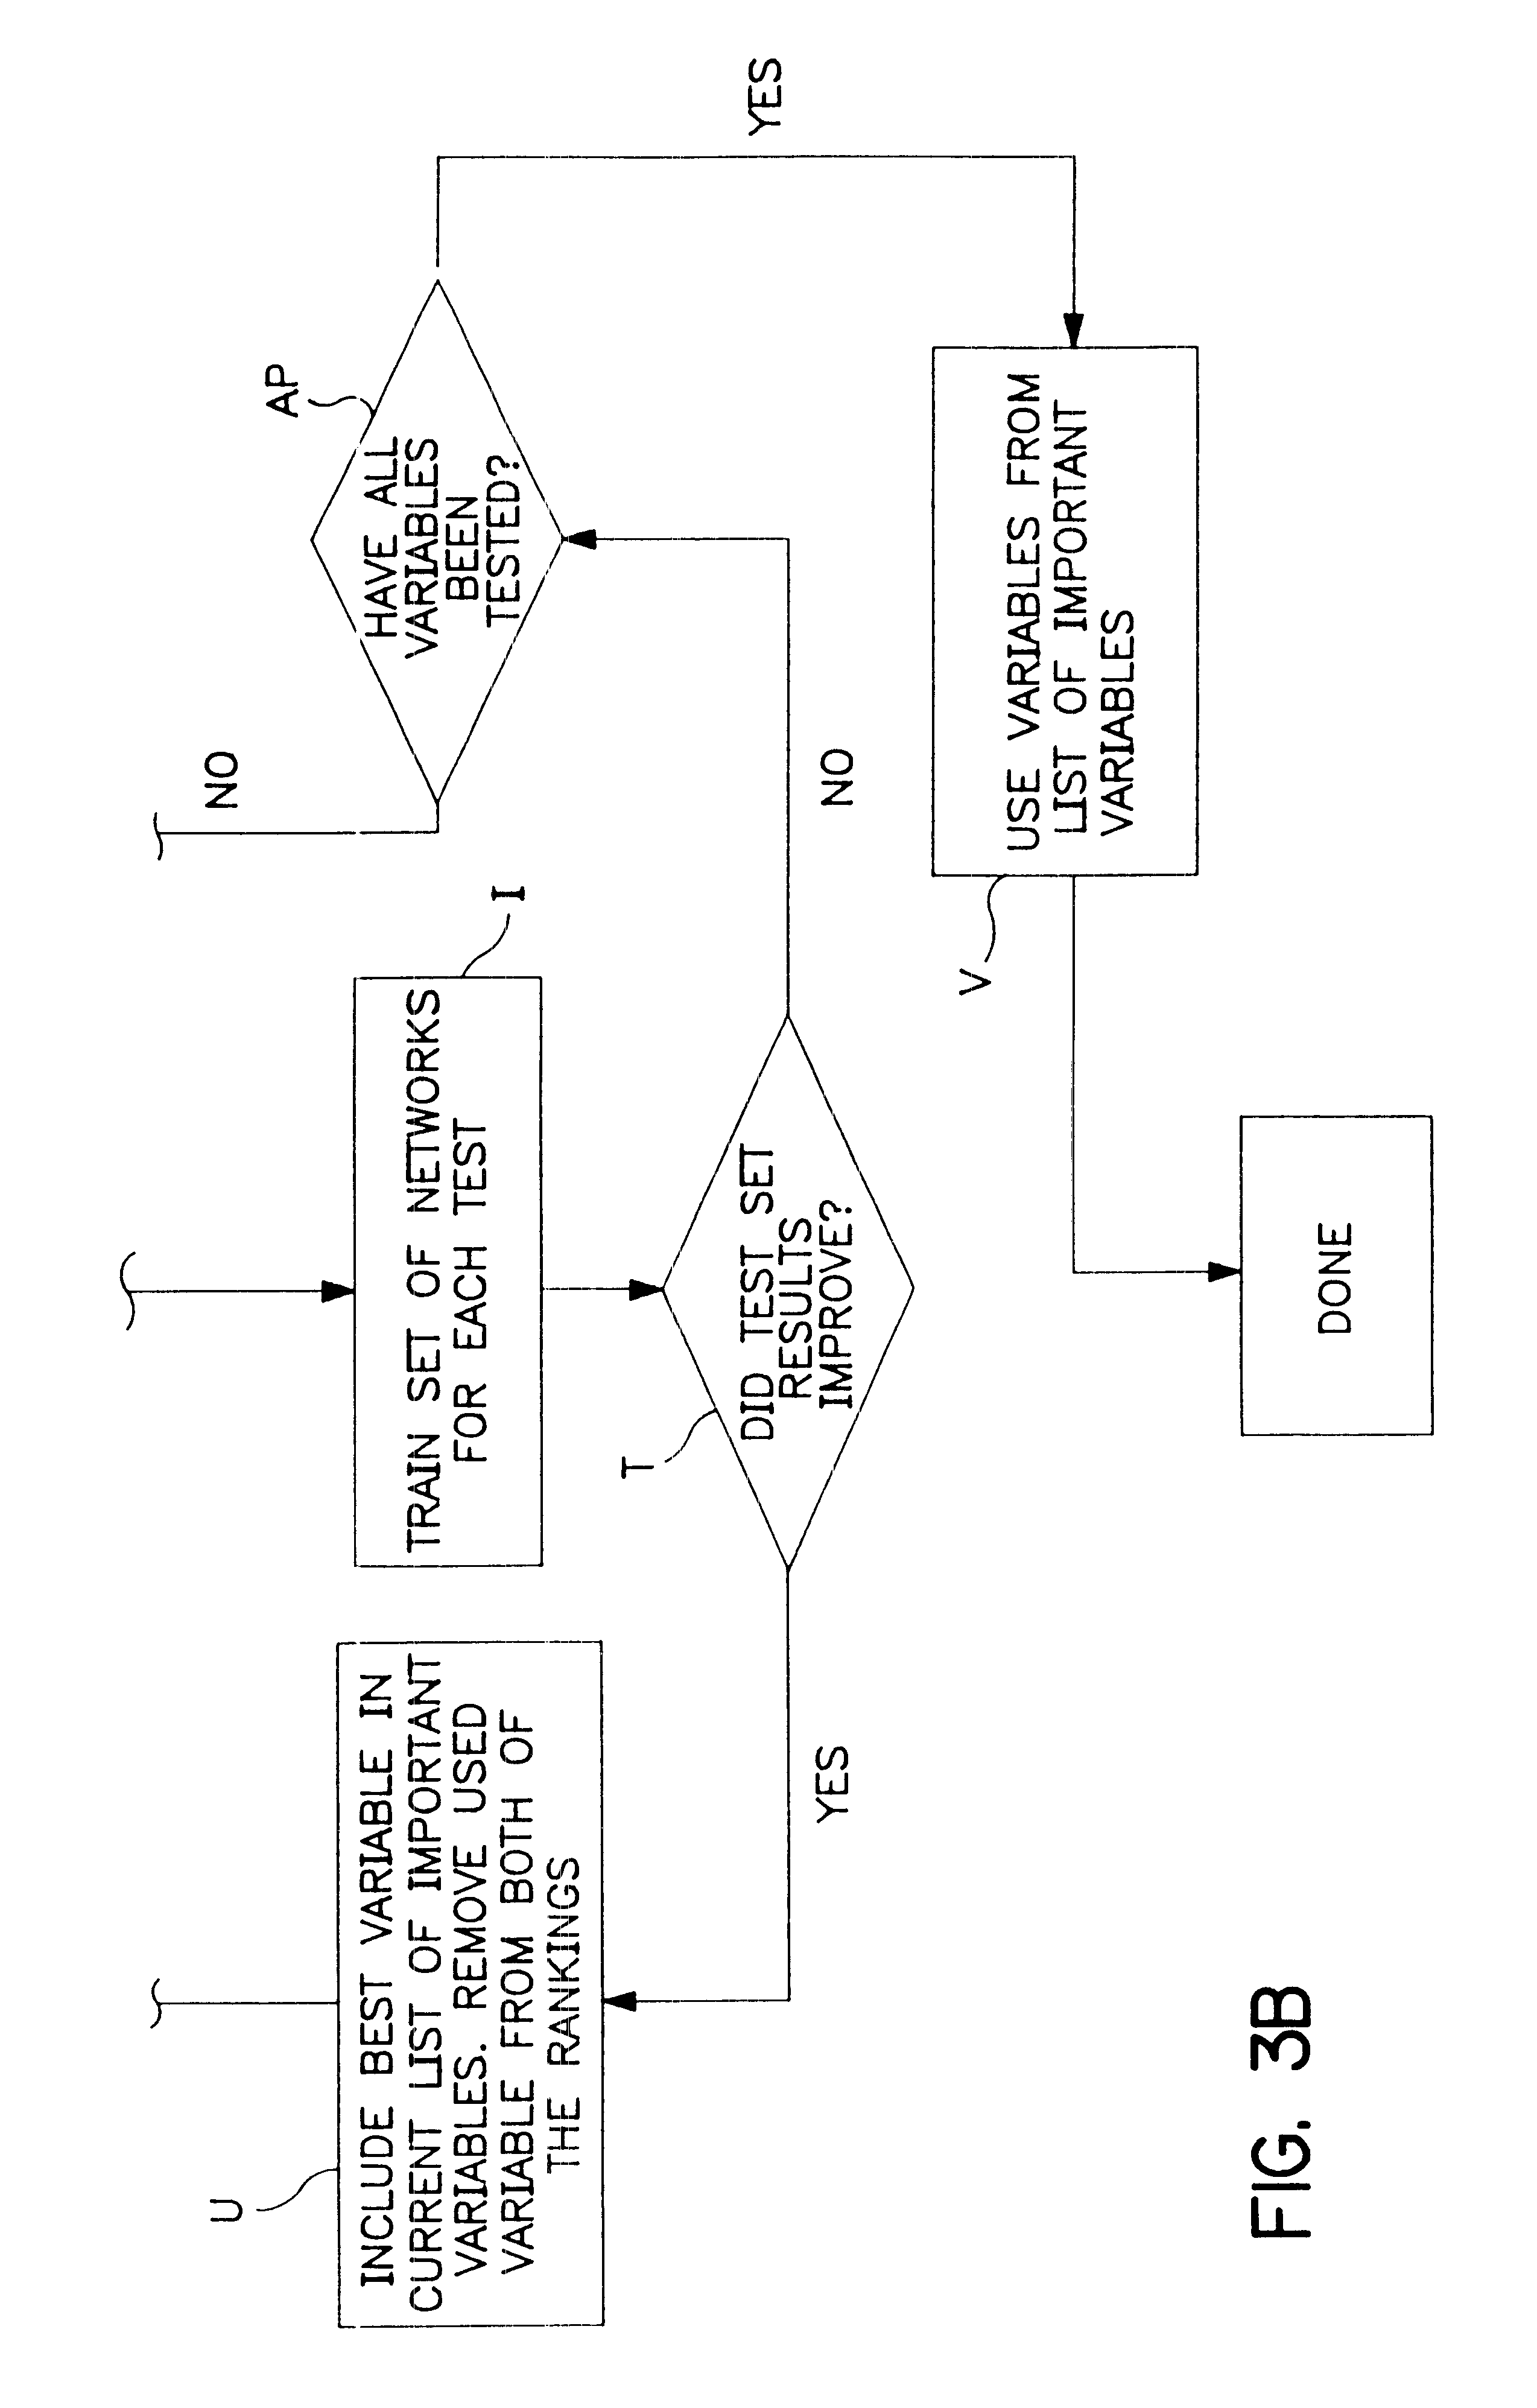 us6678669b2 method for selecting medical and biochemical